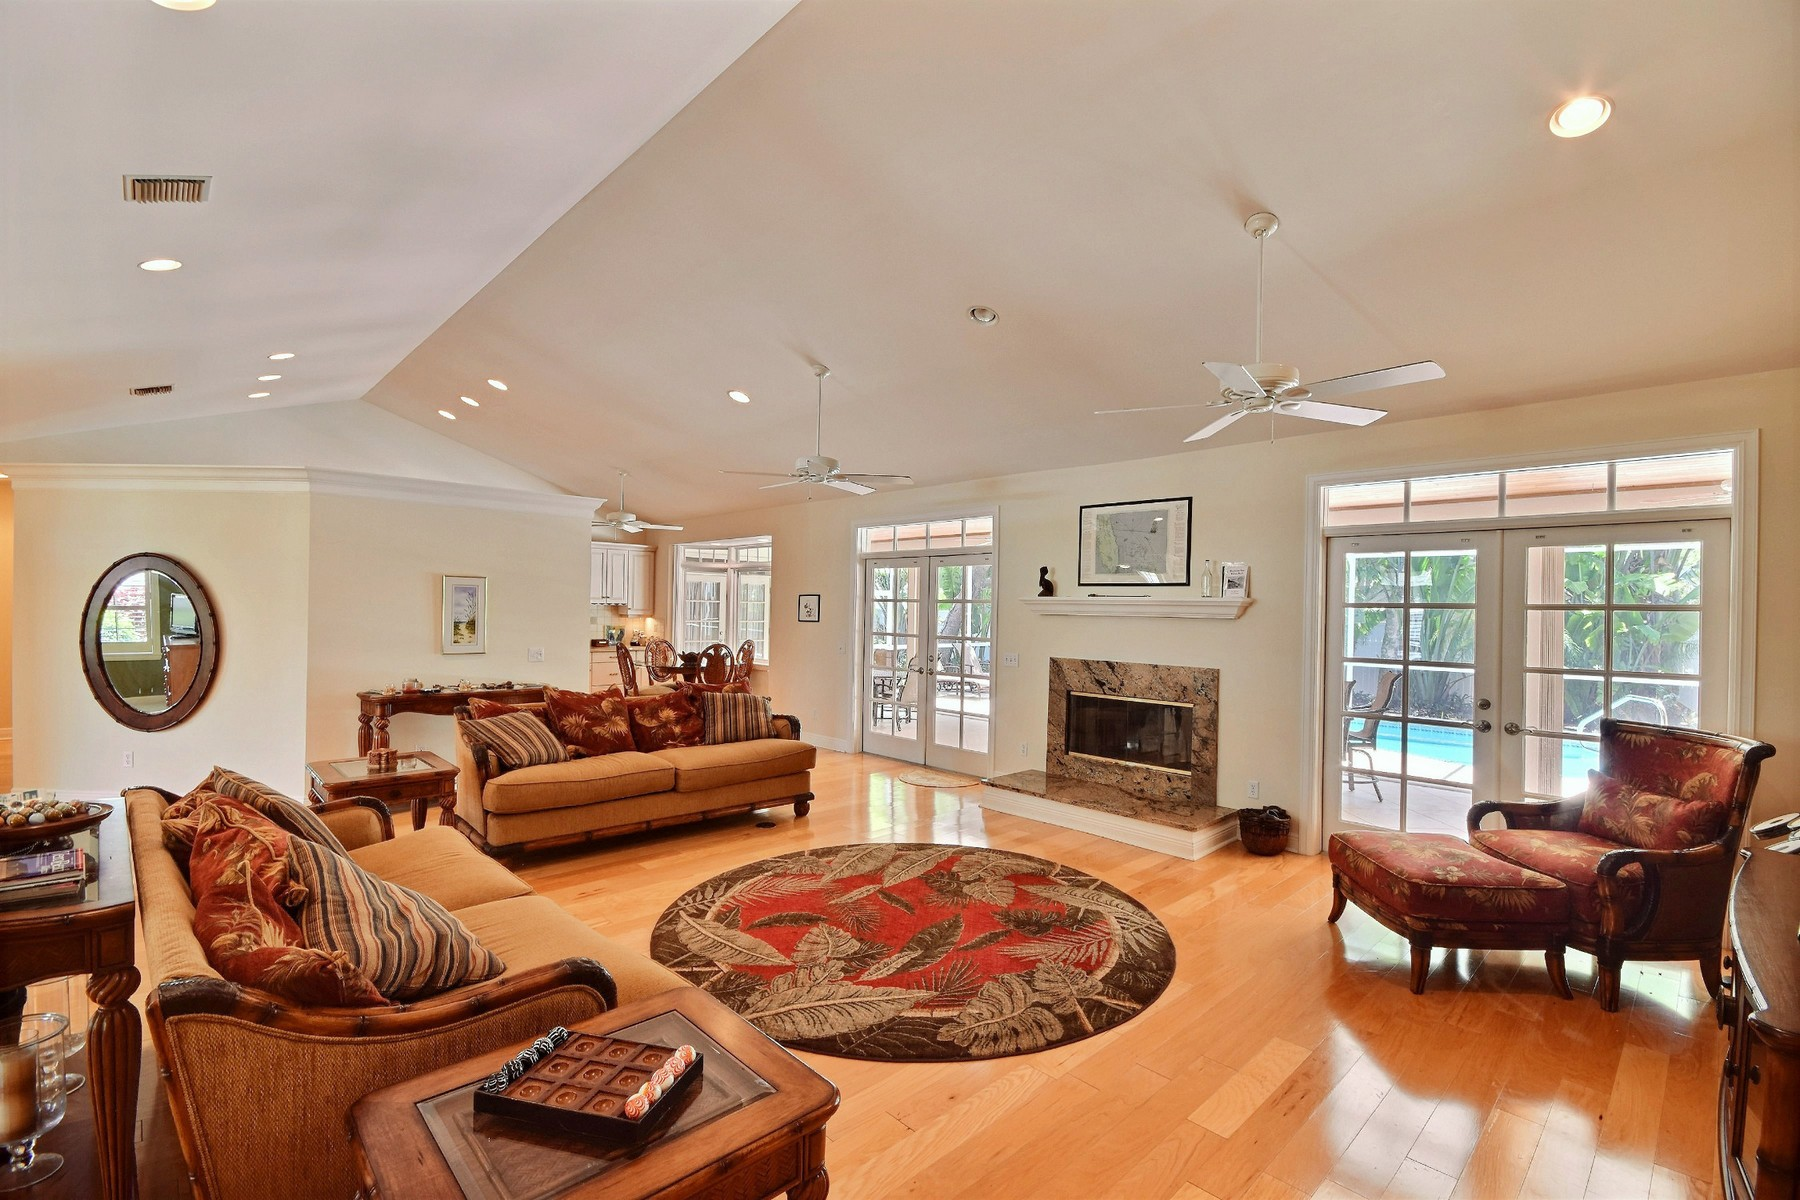 Single Family Home for Sale at Custom Home by the Ocean 904 Holoma Drive Vero Beach, Florida, 32963 United States